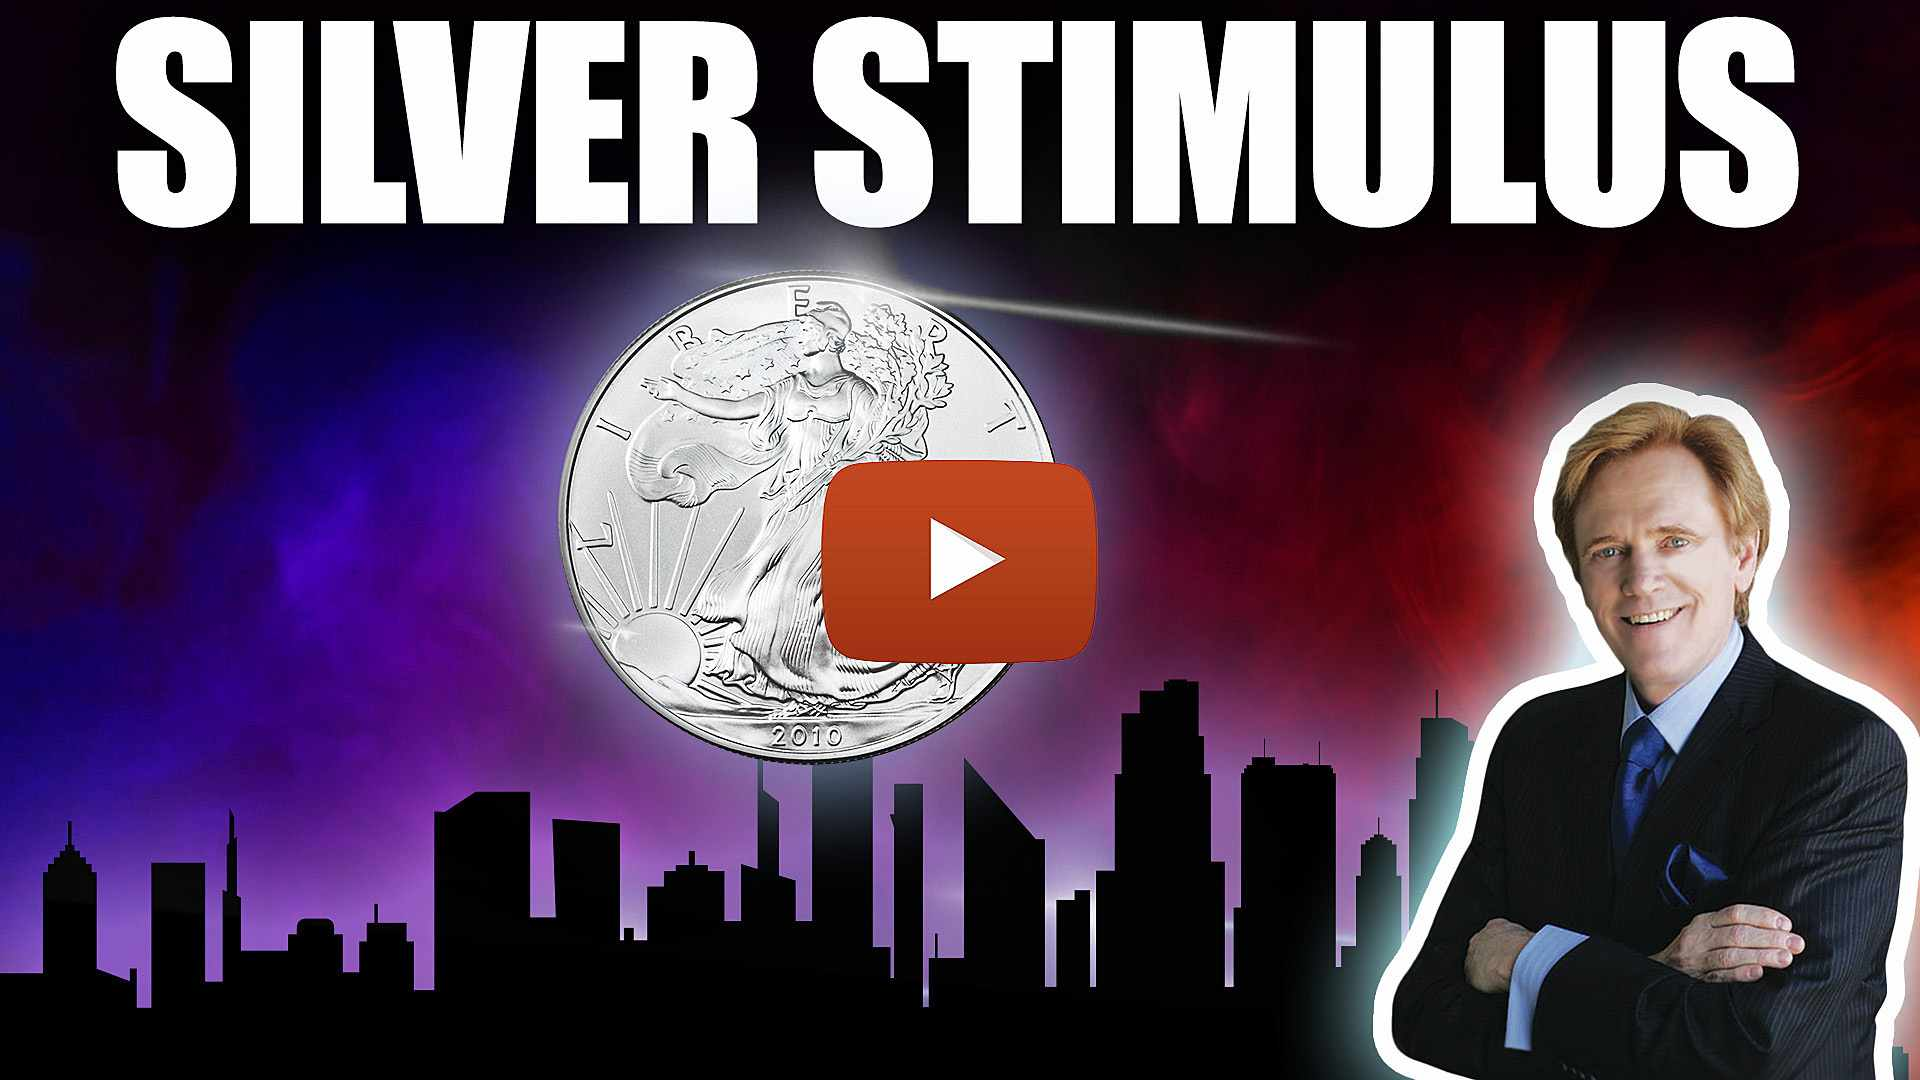 Silver Stimulus to Come From Currency Catastrophe